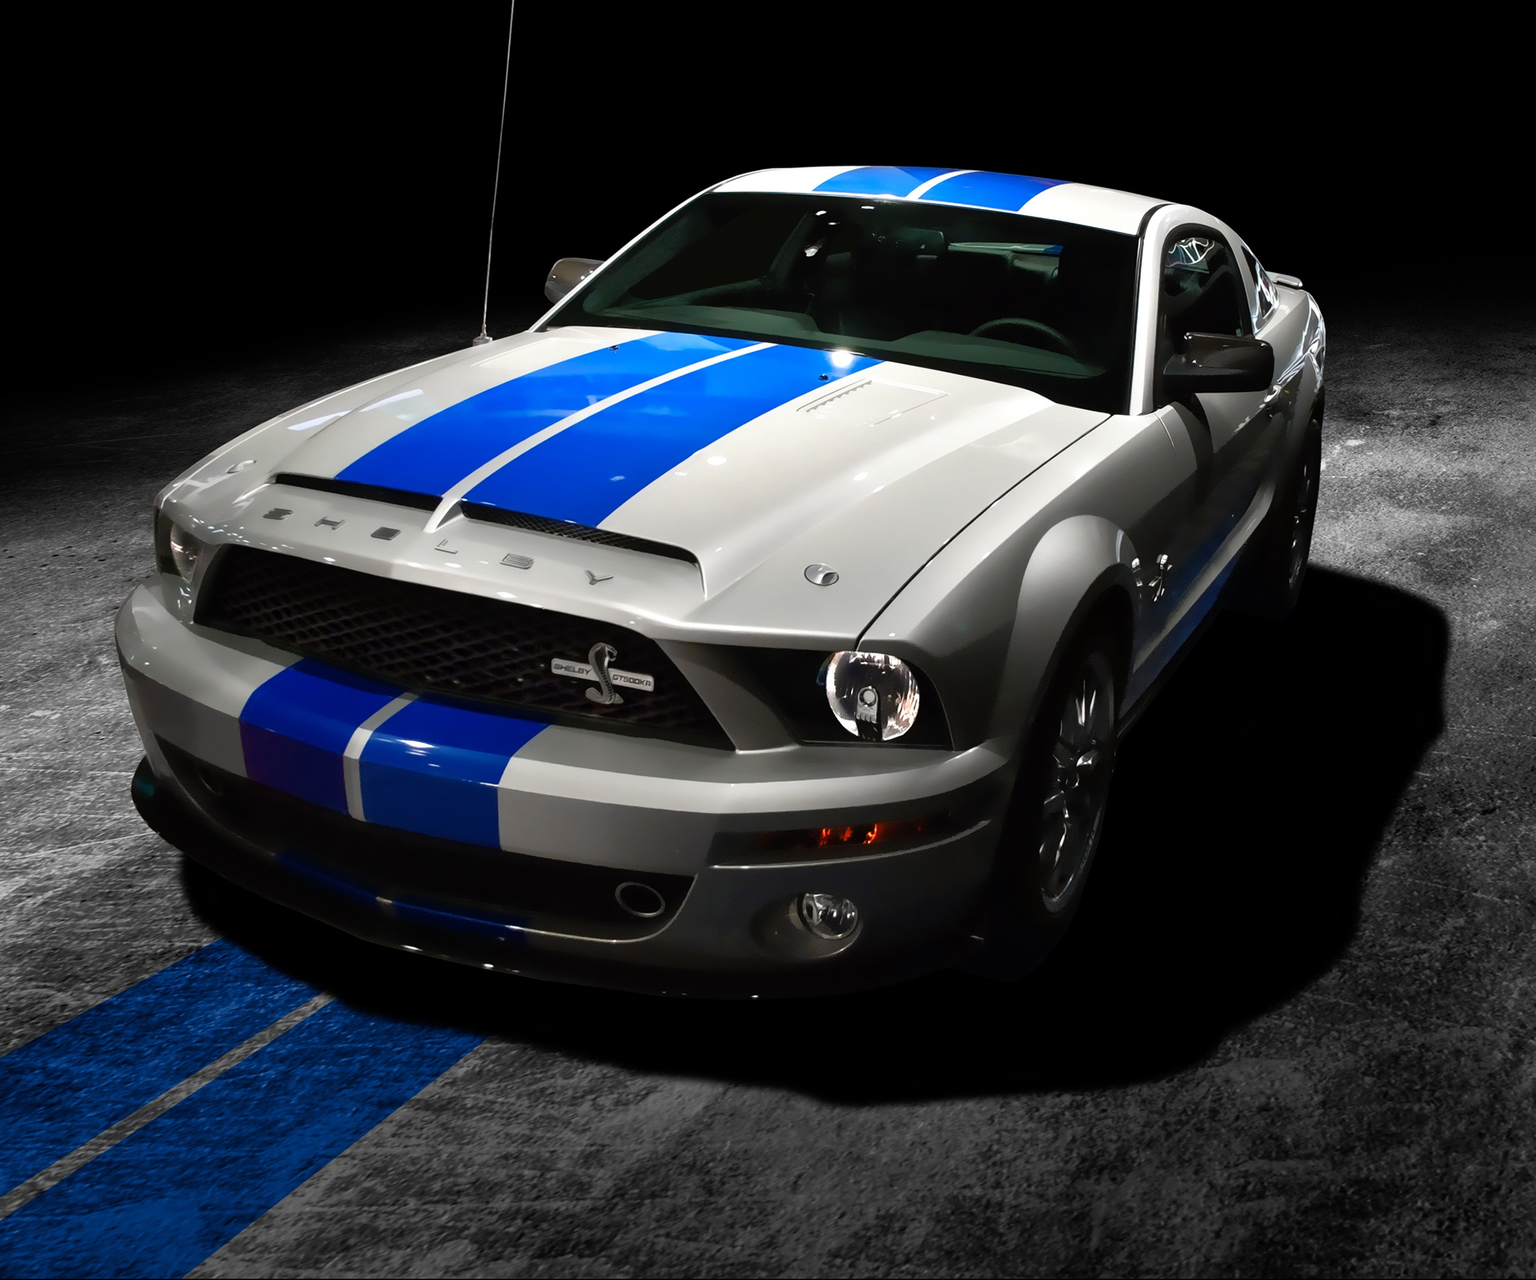 Cool Car Wallpapers For Iphone 5 Cool car backg 1536x1280